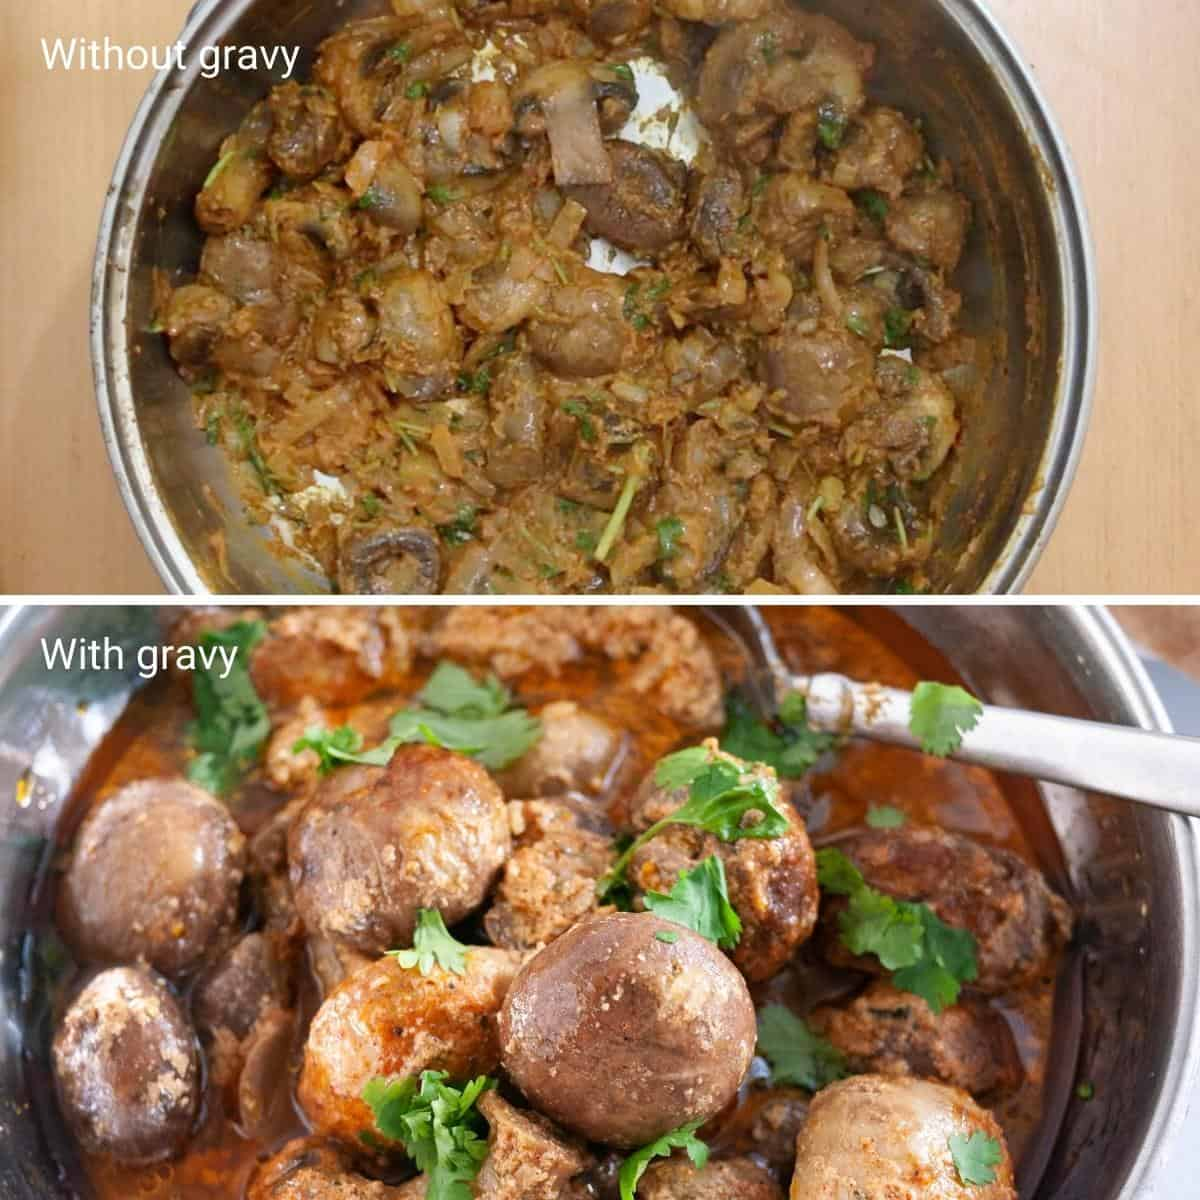 Collage with mushroom masala gravy or without gravy.